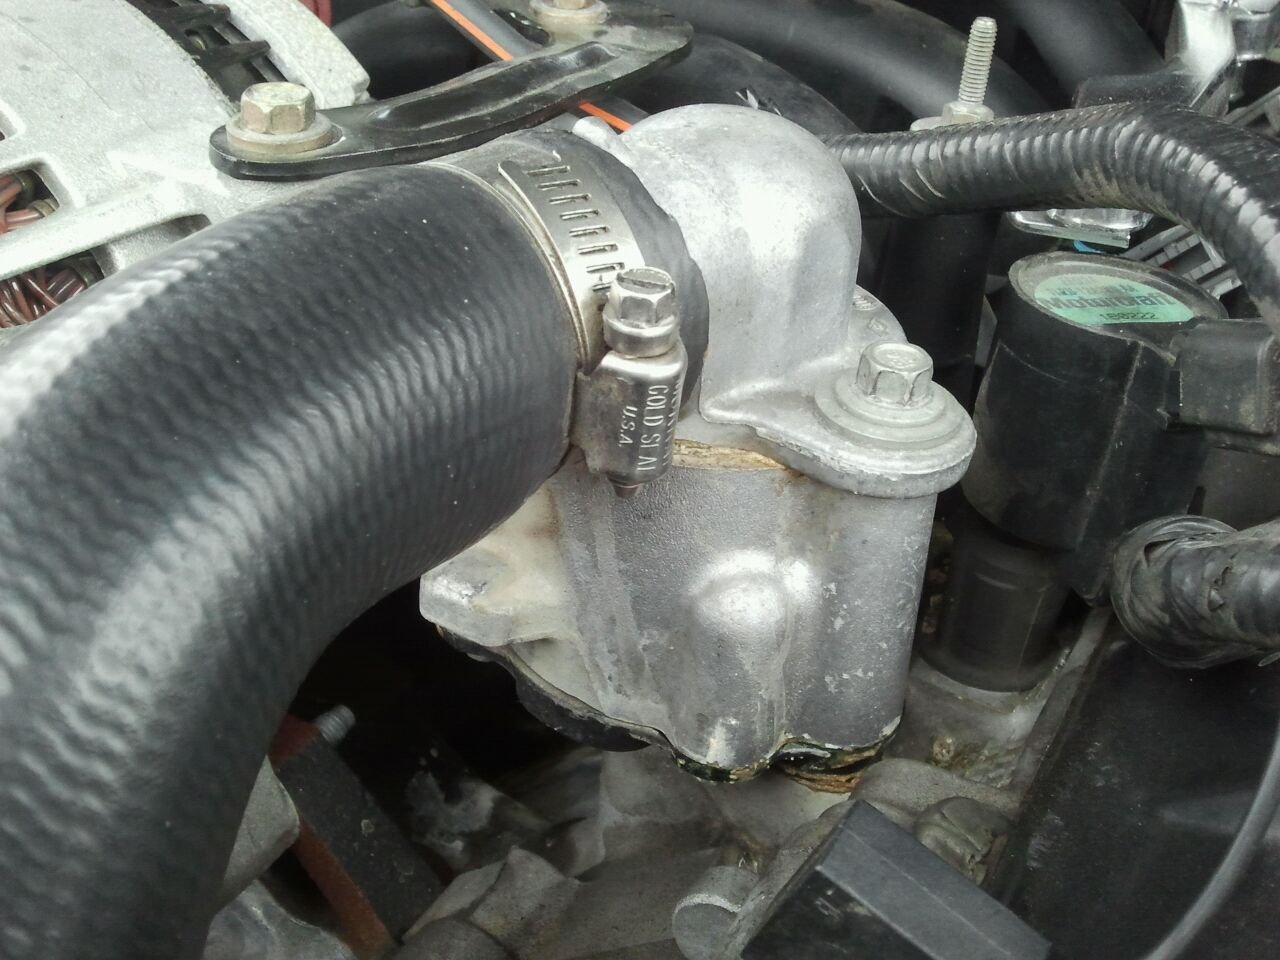 2001 Mustang Gt Anti-freeze Leaking Issues